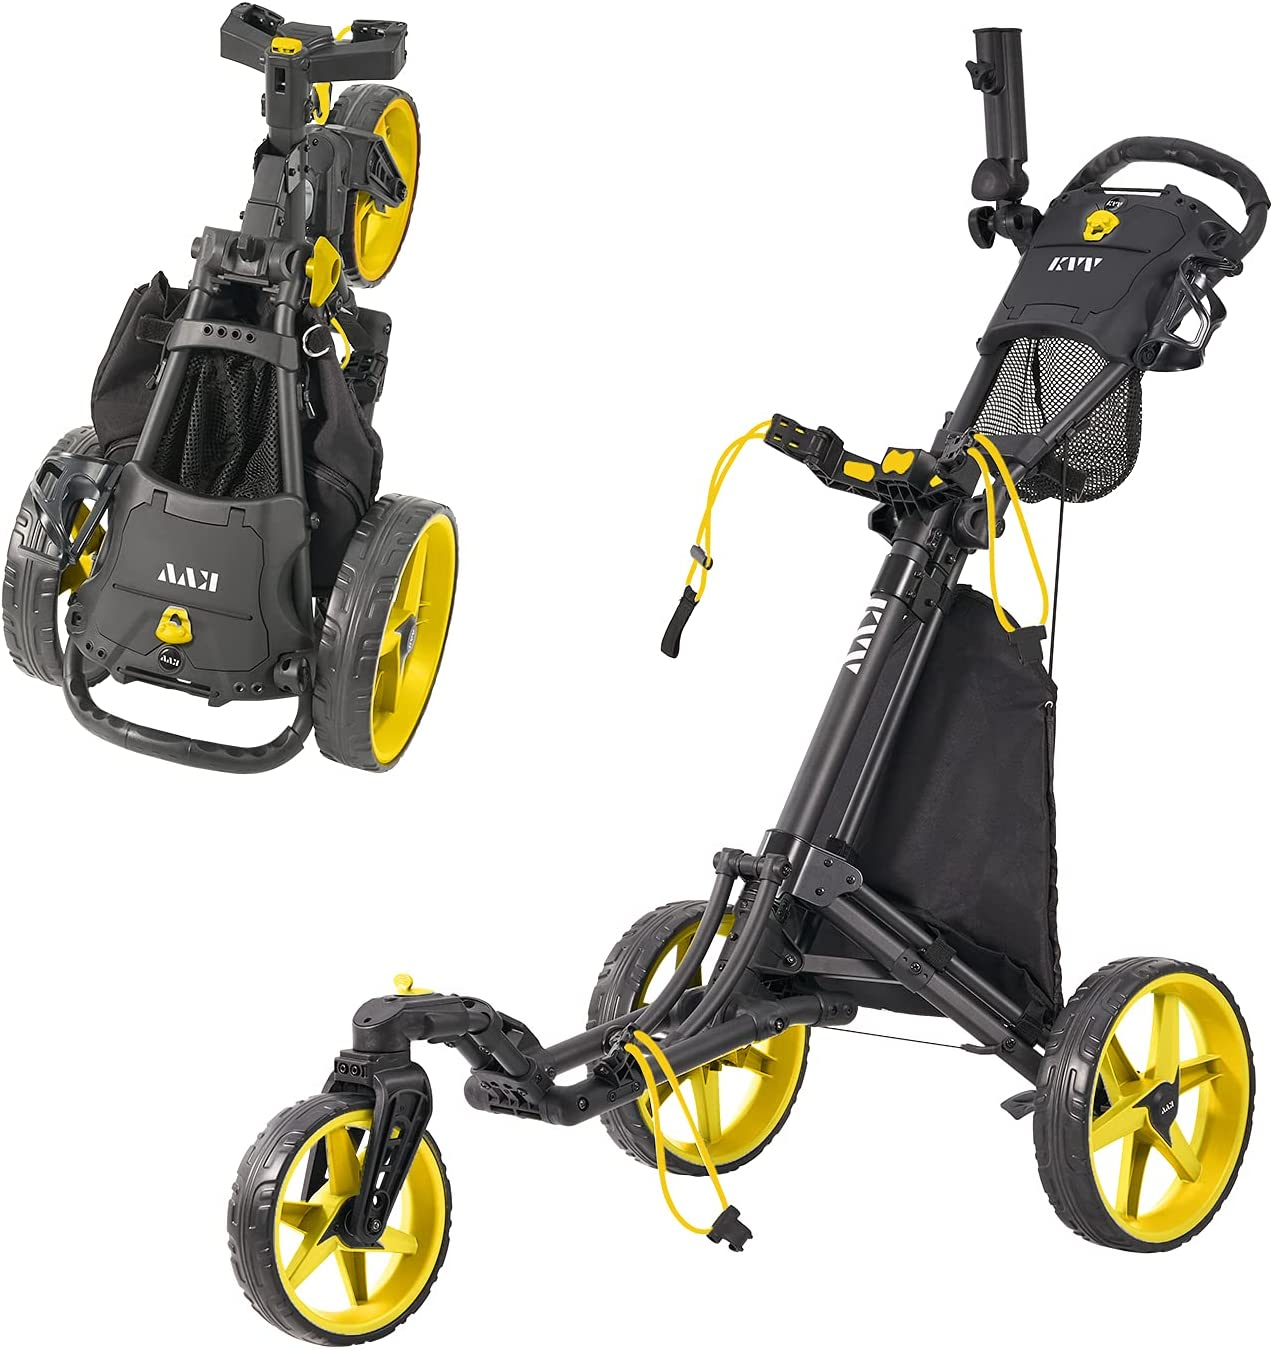 KVV 3 Wheel 360 Rotating Front Wheel Golf Push Cart Open and Close in ONE Second-Free Umbrella Holder Included